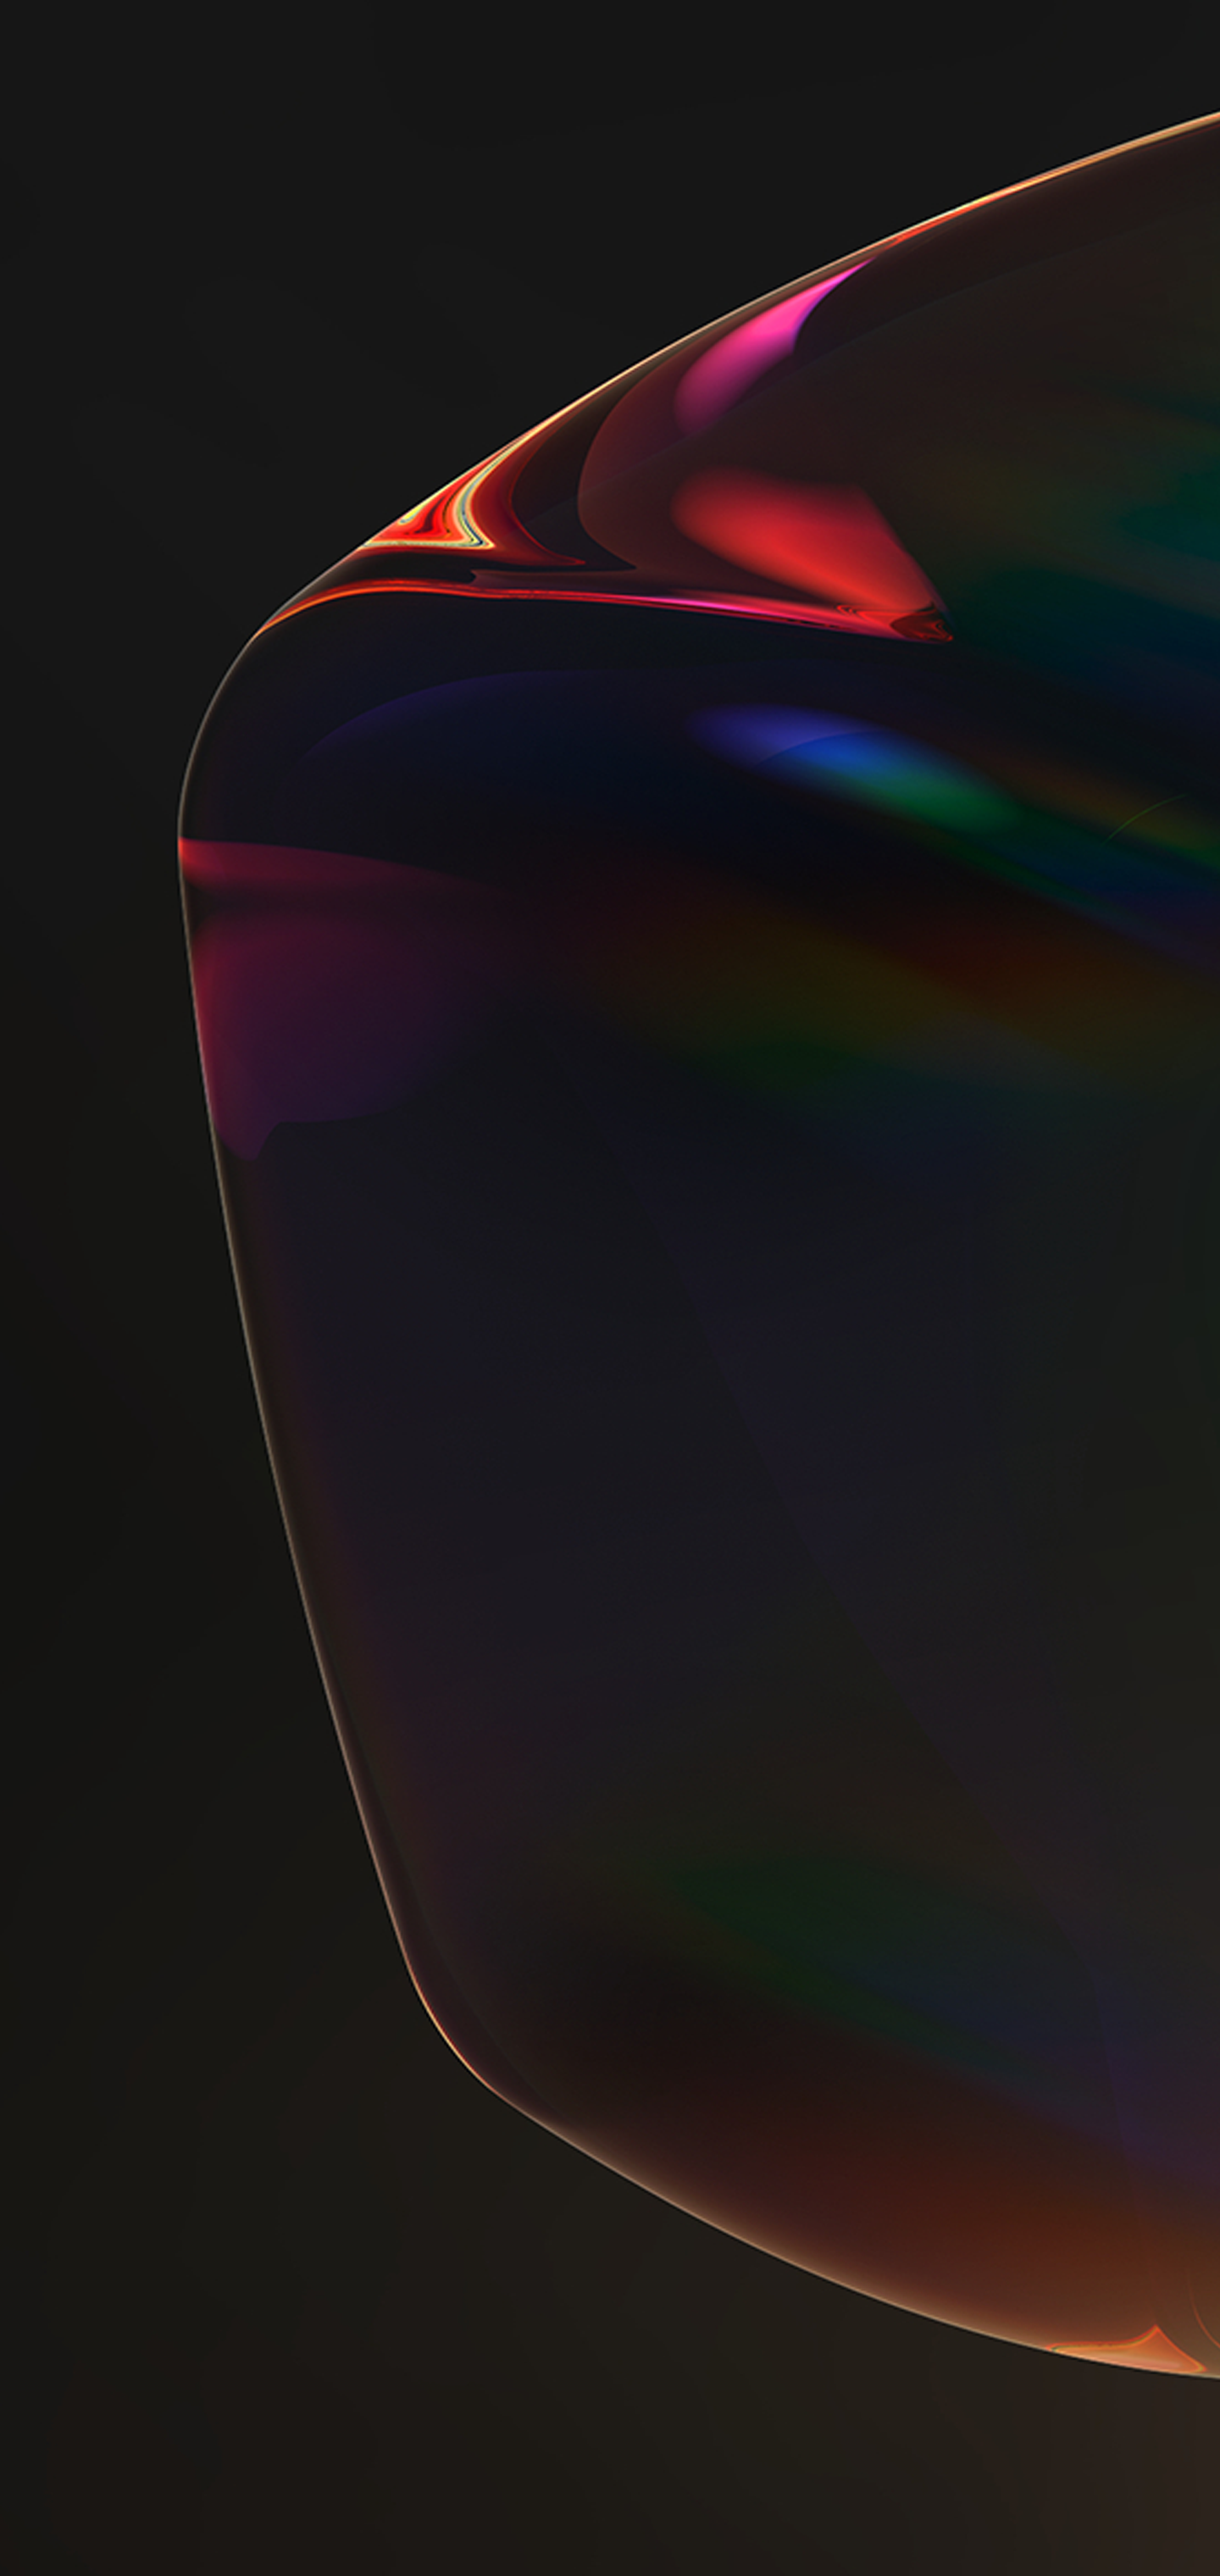 Samsung Galaxy Note 10 Wallpaper (YTECHB Exclusive) in